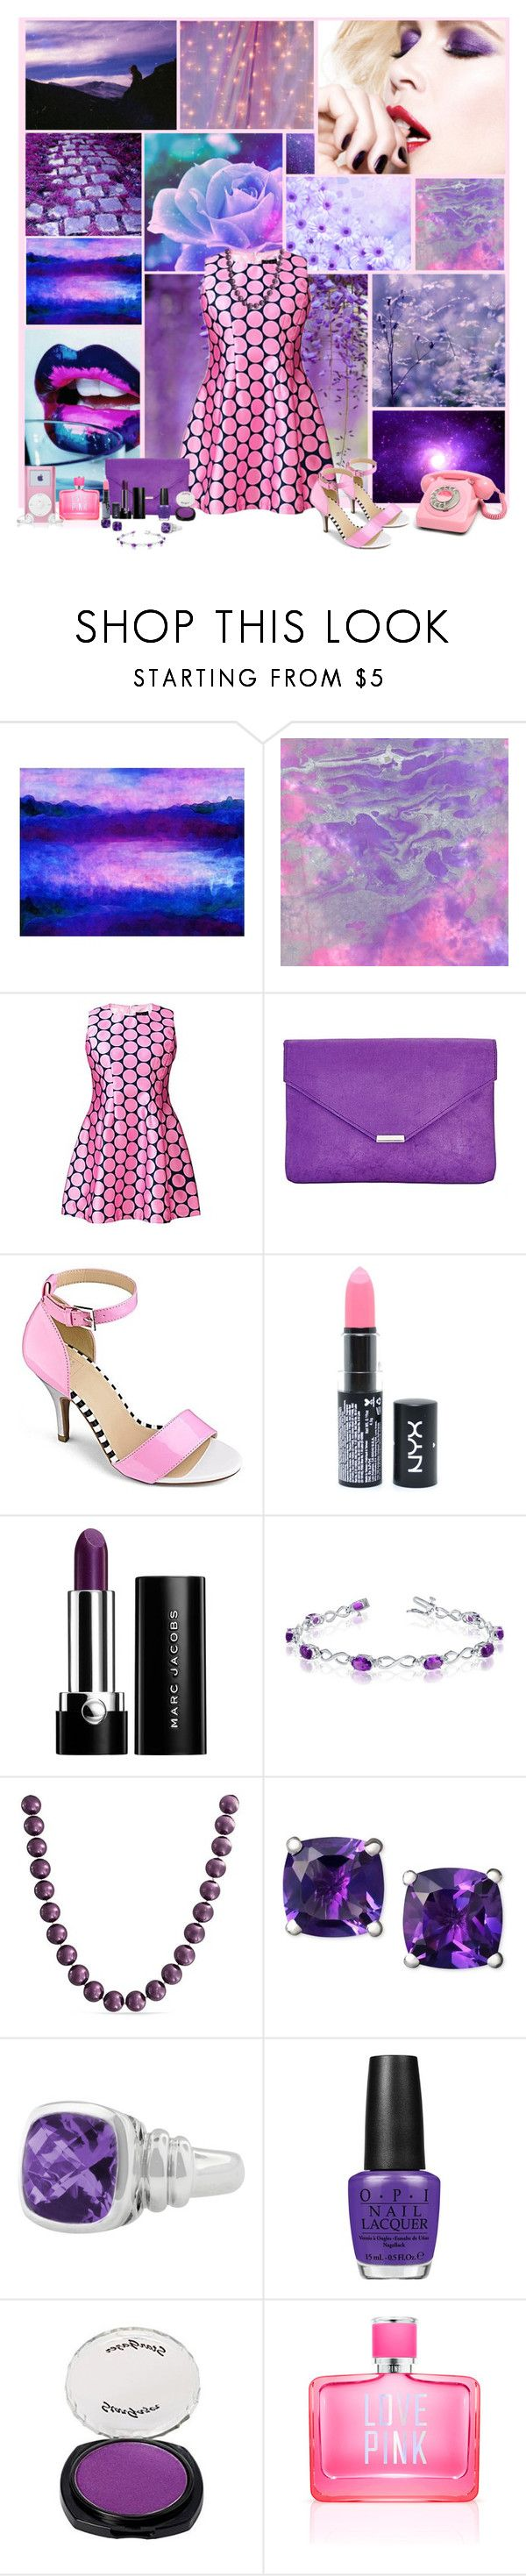 """""""39"""" by plus-uk ❤ liked on Polyvore featuring Universal Lighting and Decor, AX Paris, NYX, Marc Jacobs, Allurez, Bling Jewelry, Effy Jewelry, OPI, CO and Victoria's Secret PINK"""